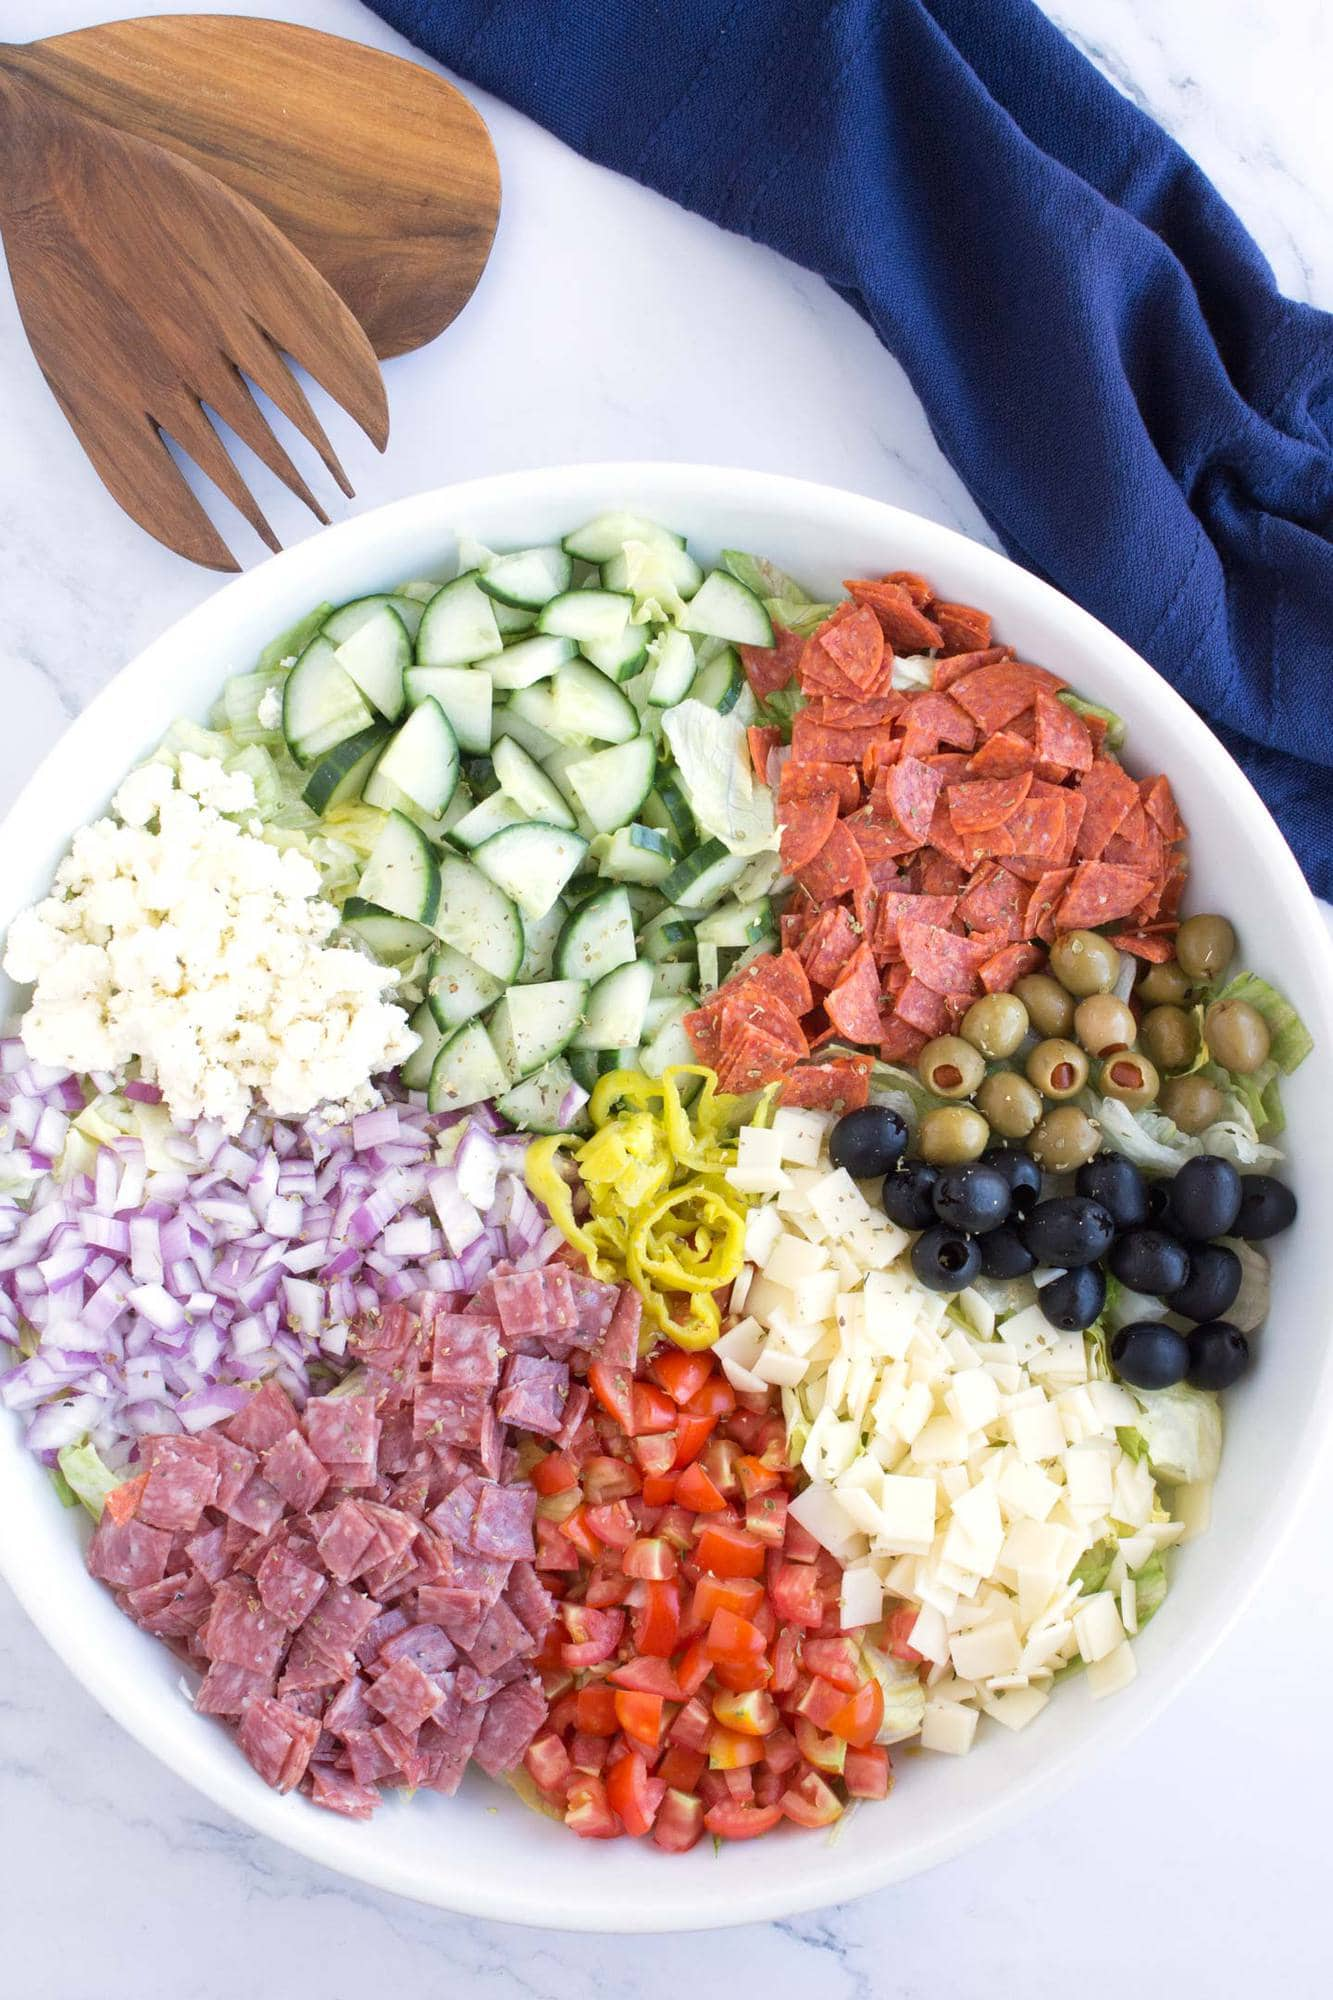 Italian Chopped Salad in serving bowl with blue towel and serving tongs.